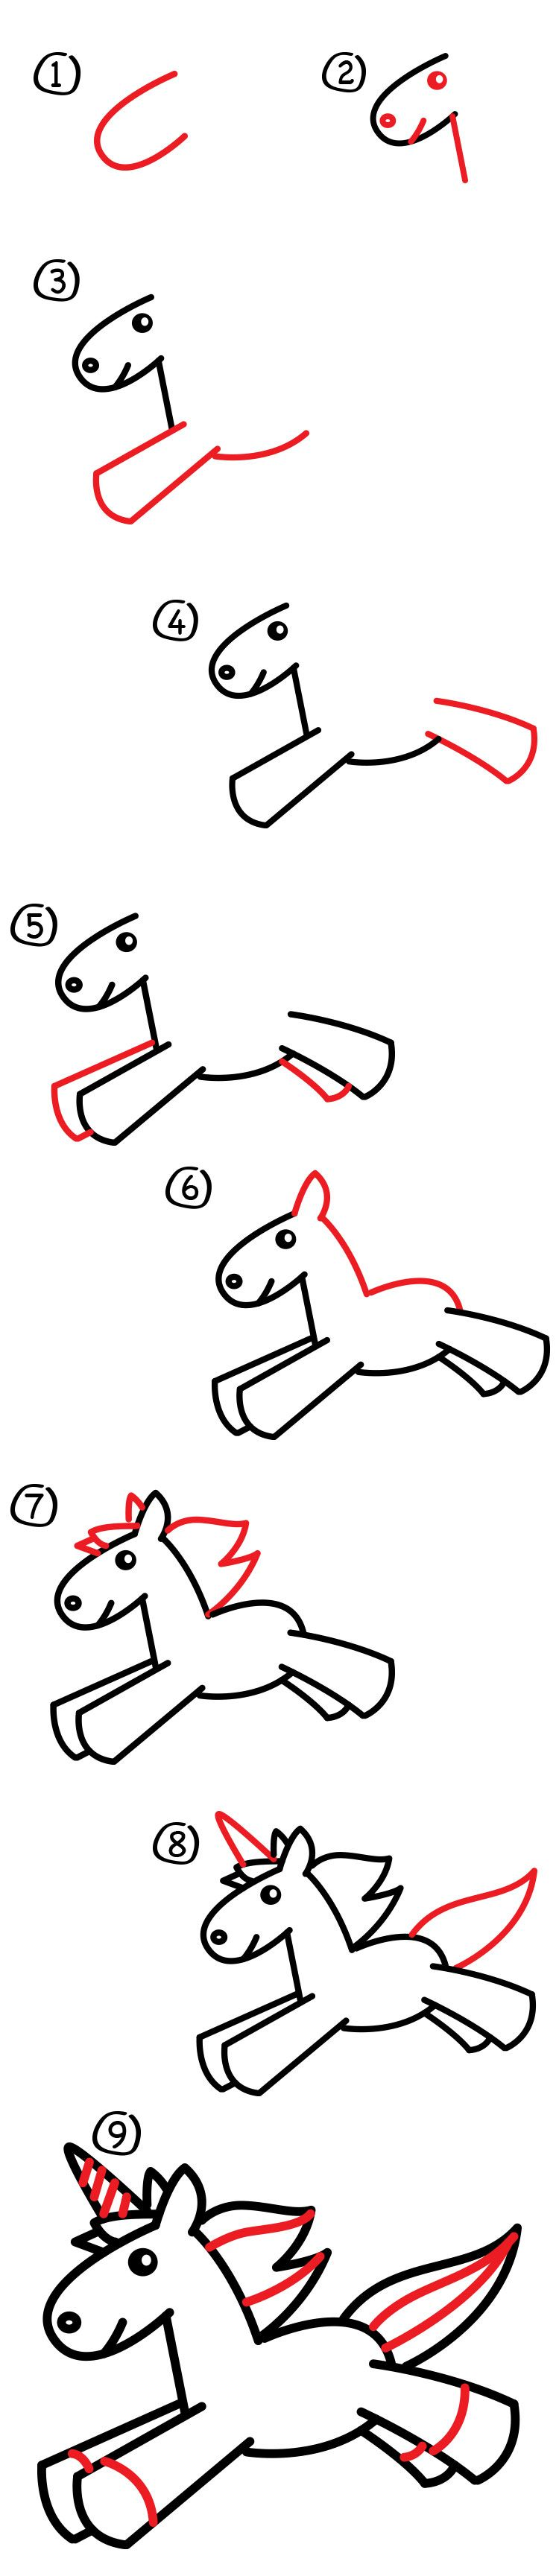 How to draw a unicorn for kids free printable unicorns for Learn drawing online step by step